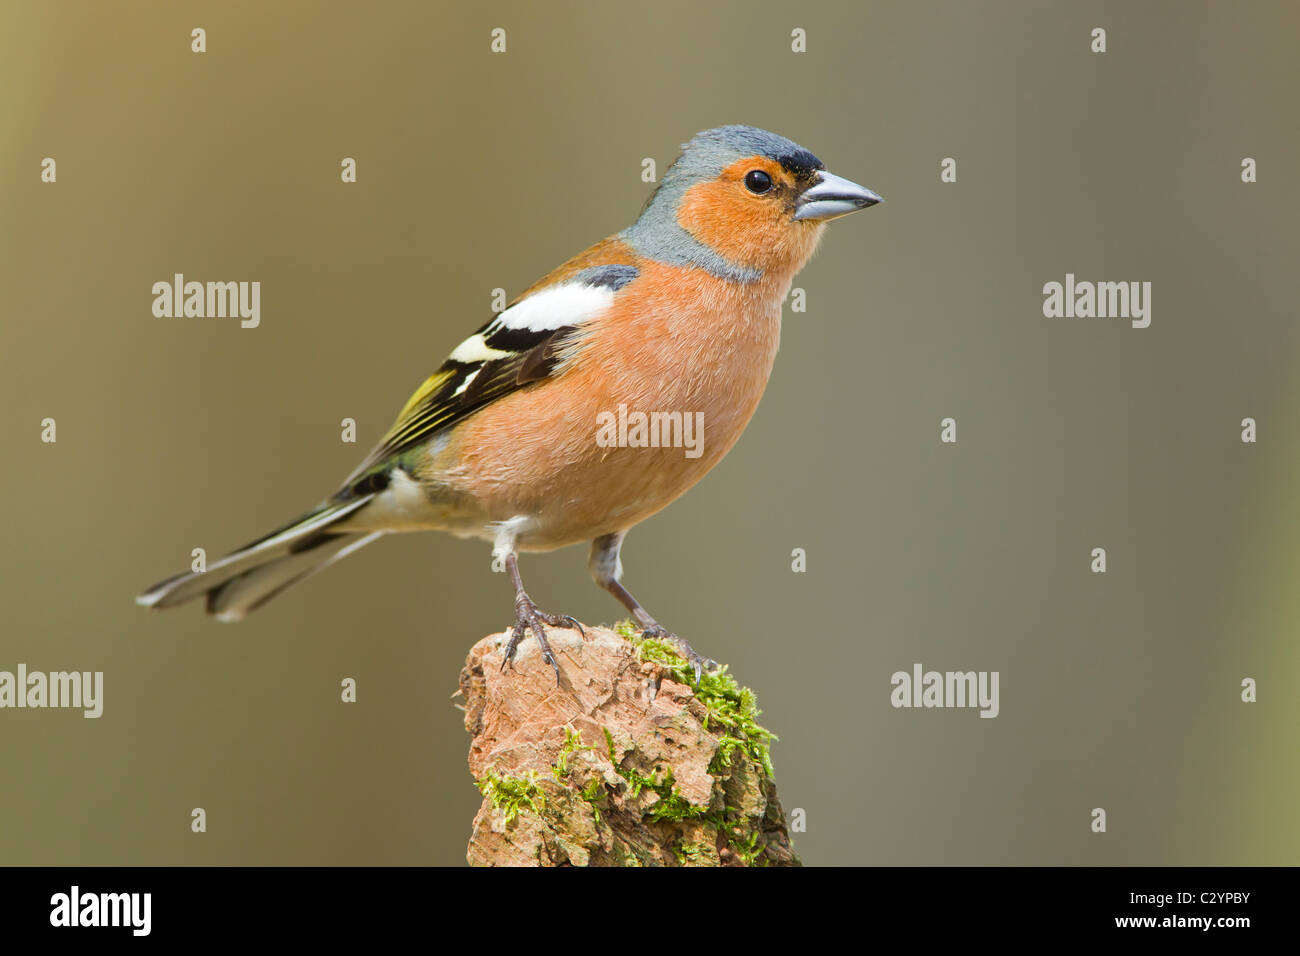 Chaffinch male perched on a mossy stump. - Stock Image